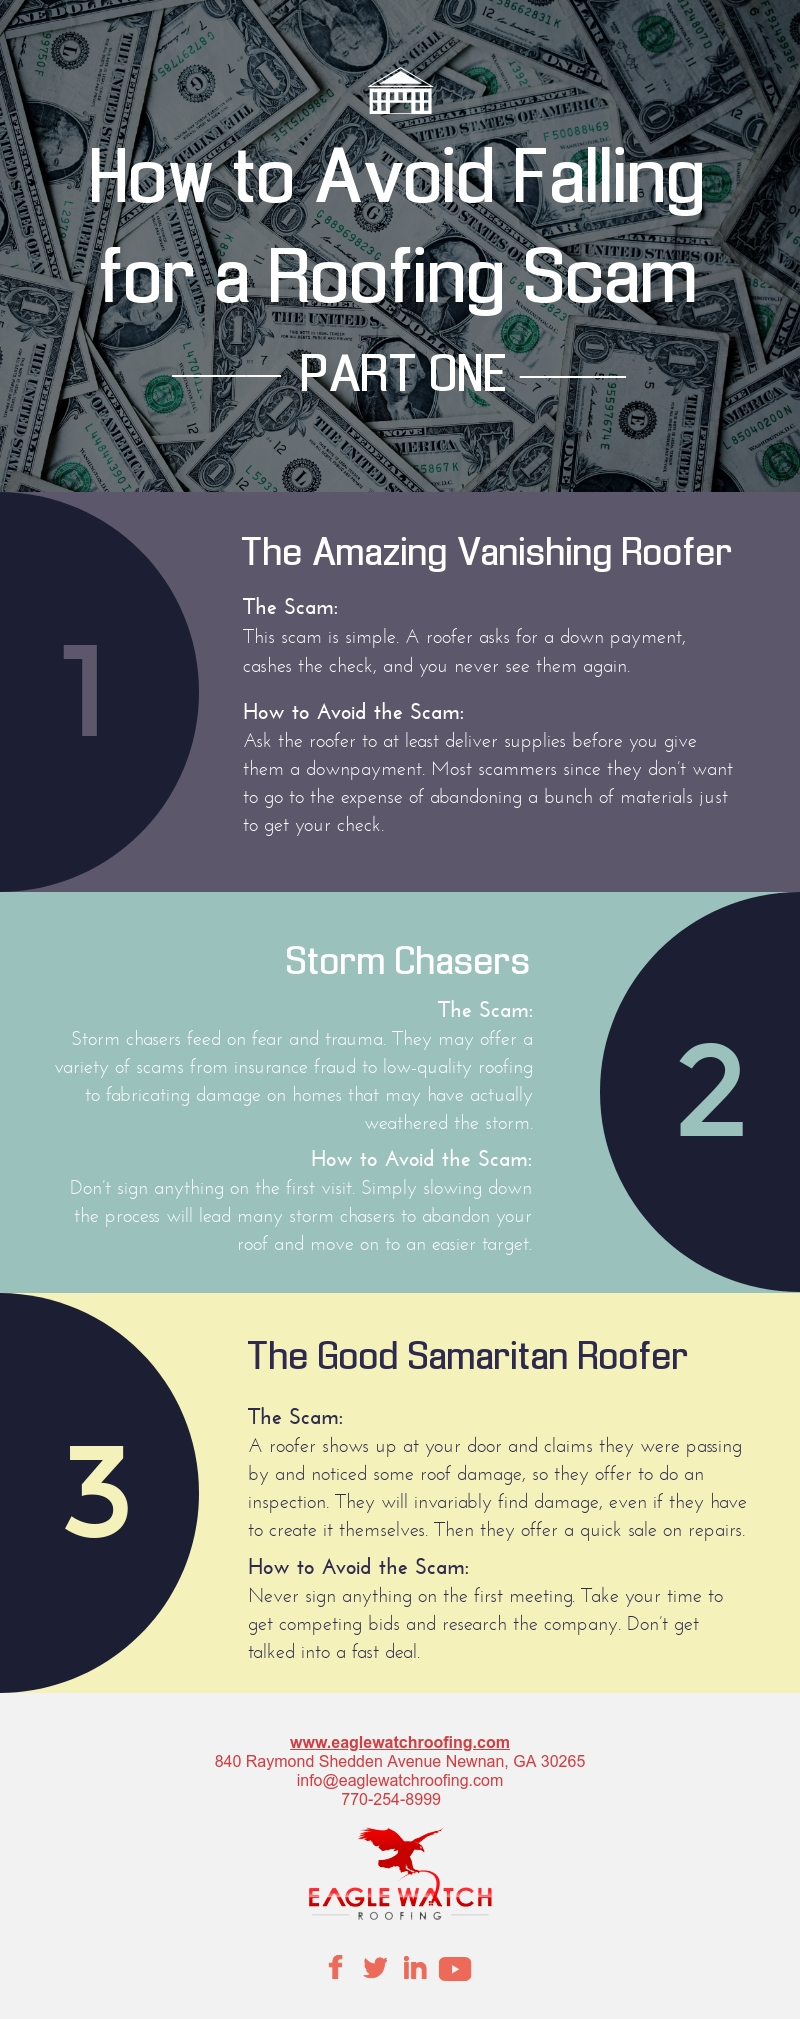 How to Avoid Falling for a Roofing Scam - Part One [infographic]